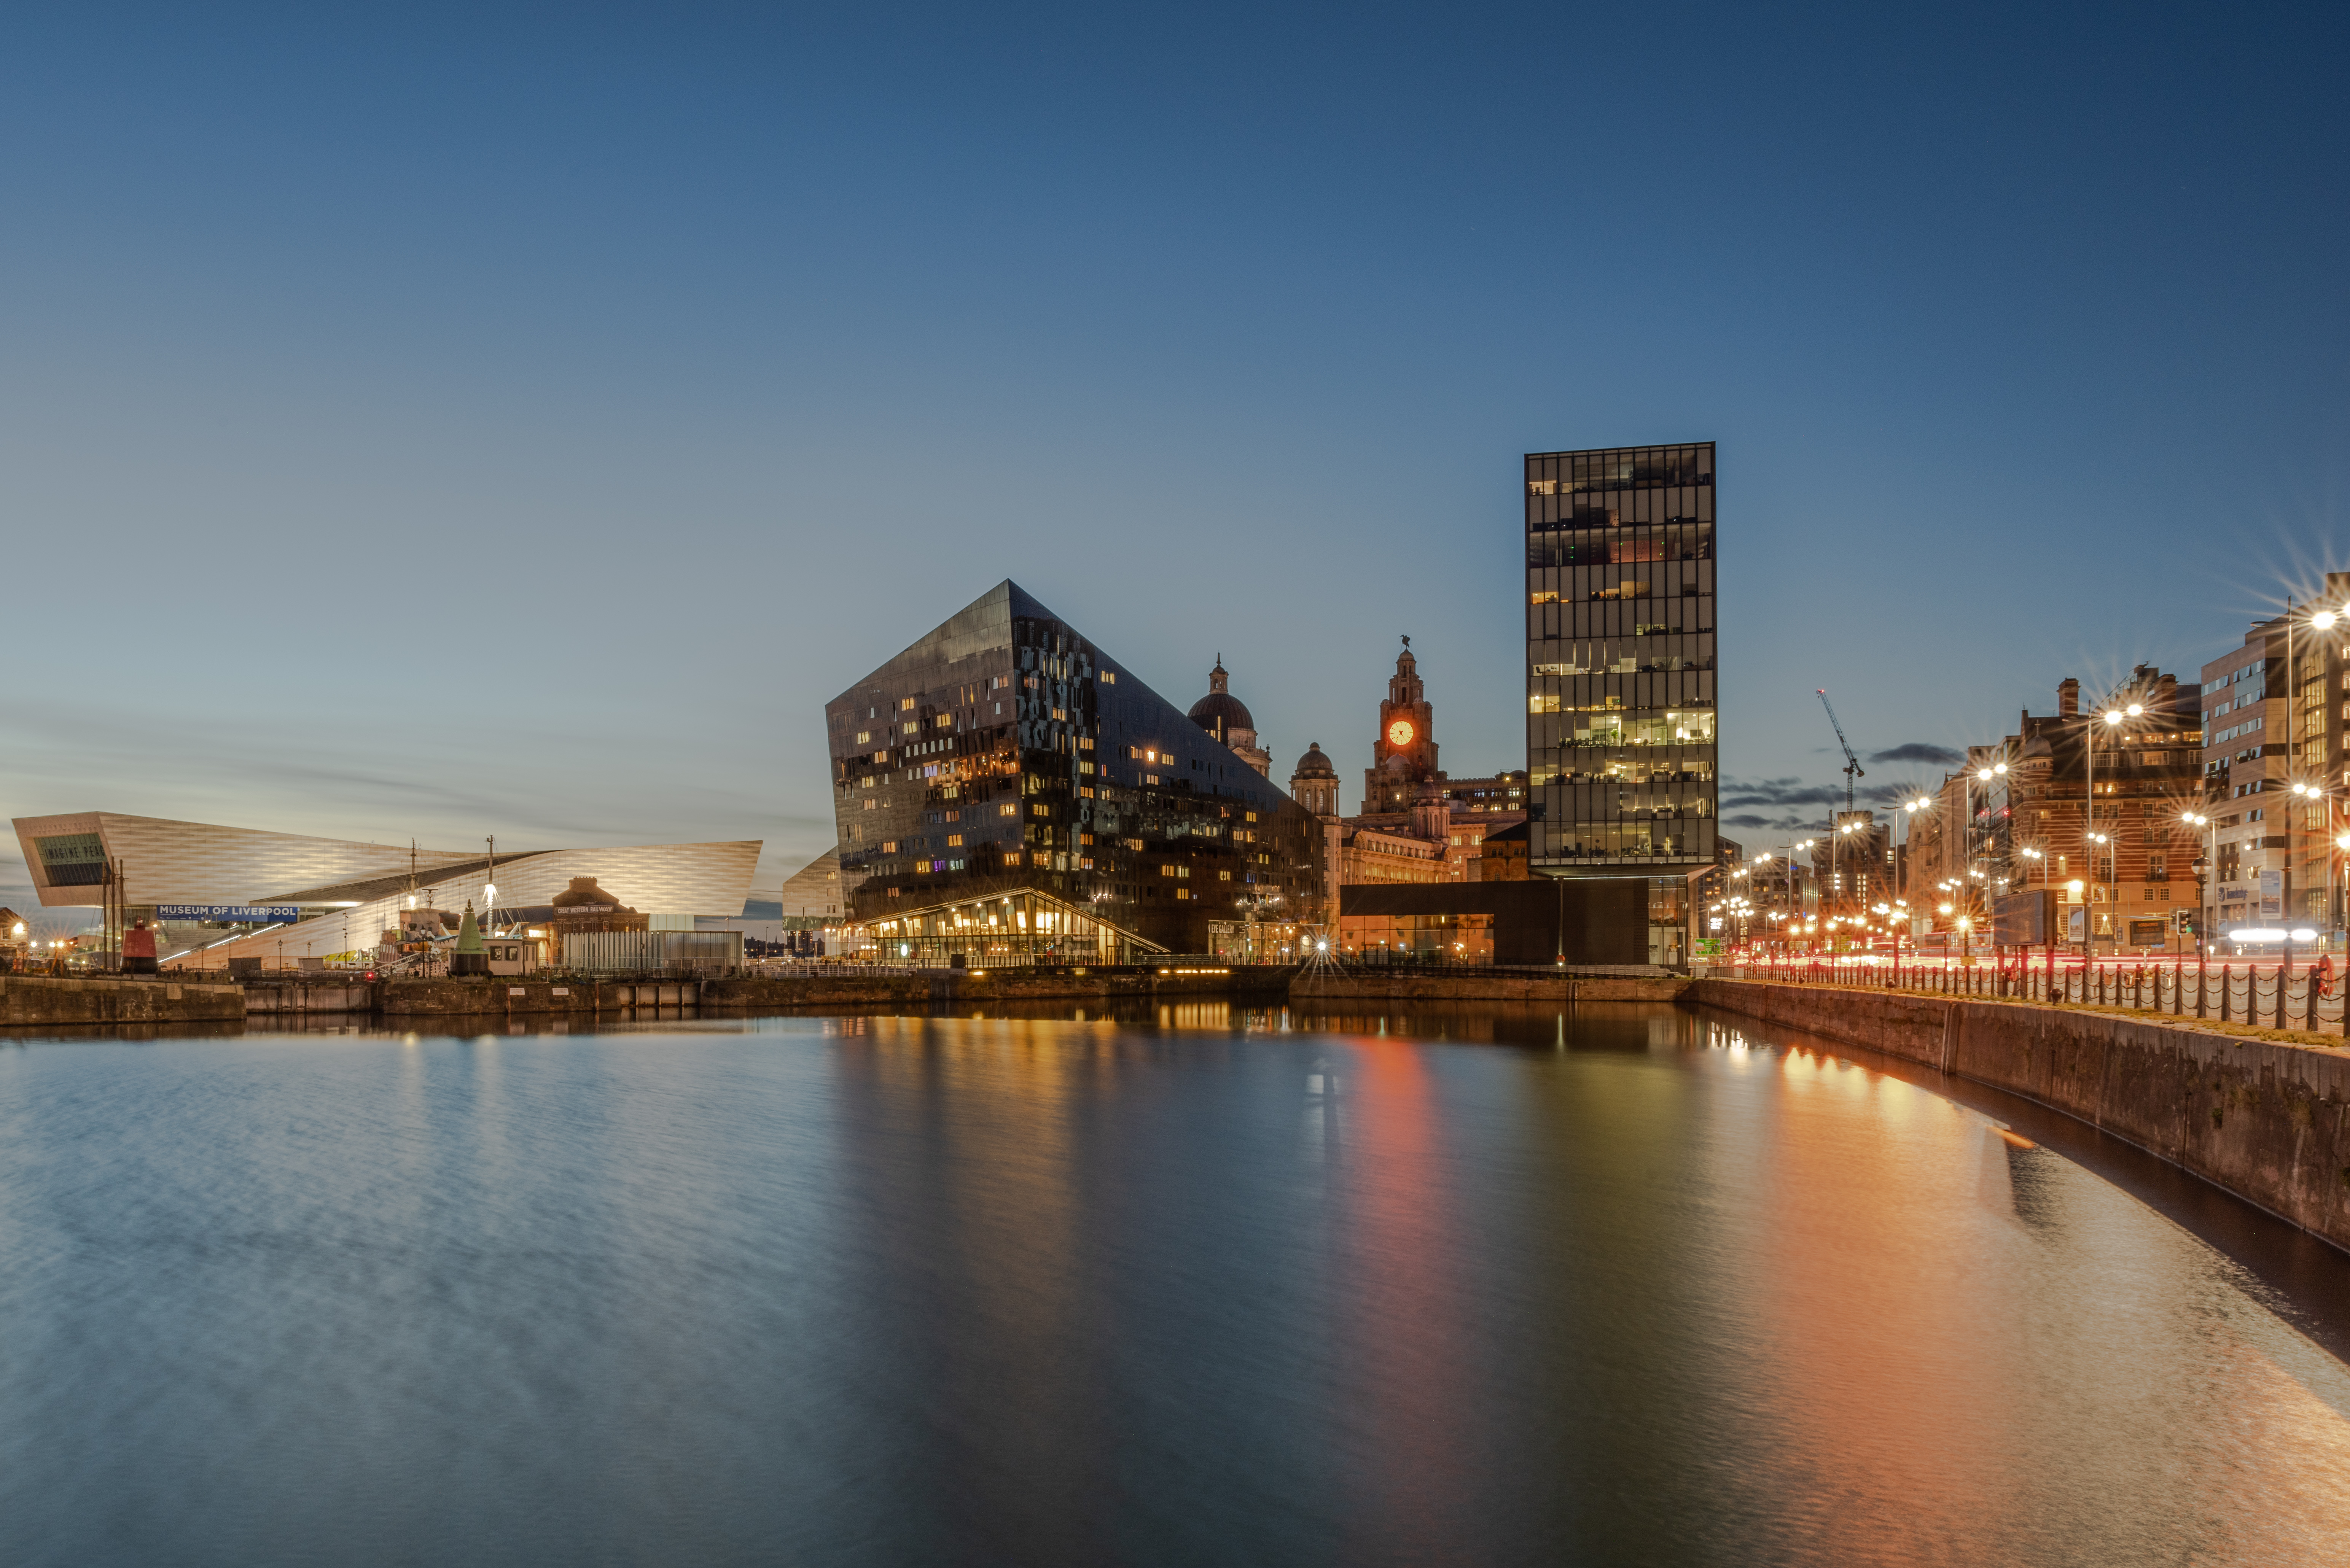 Canning Dock, Liverpool at Blue Hour